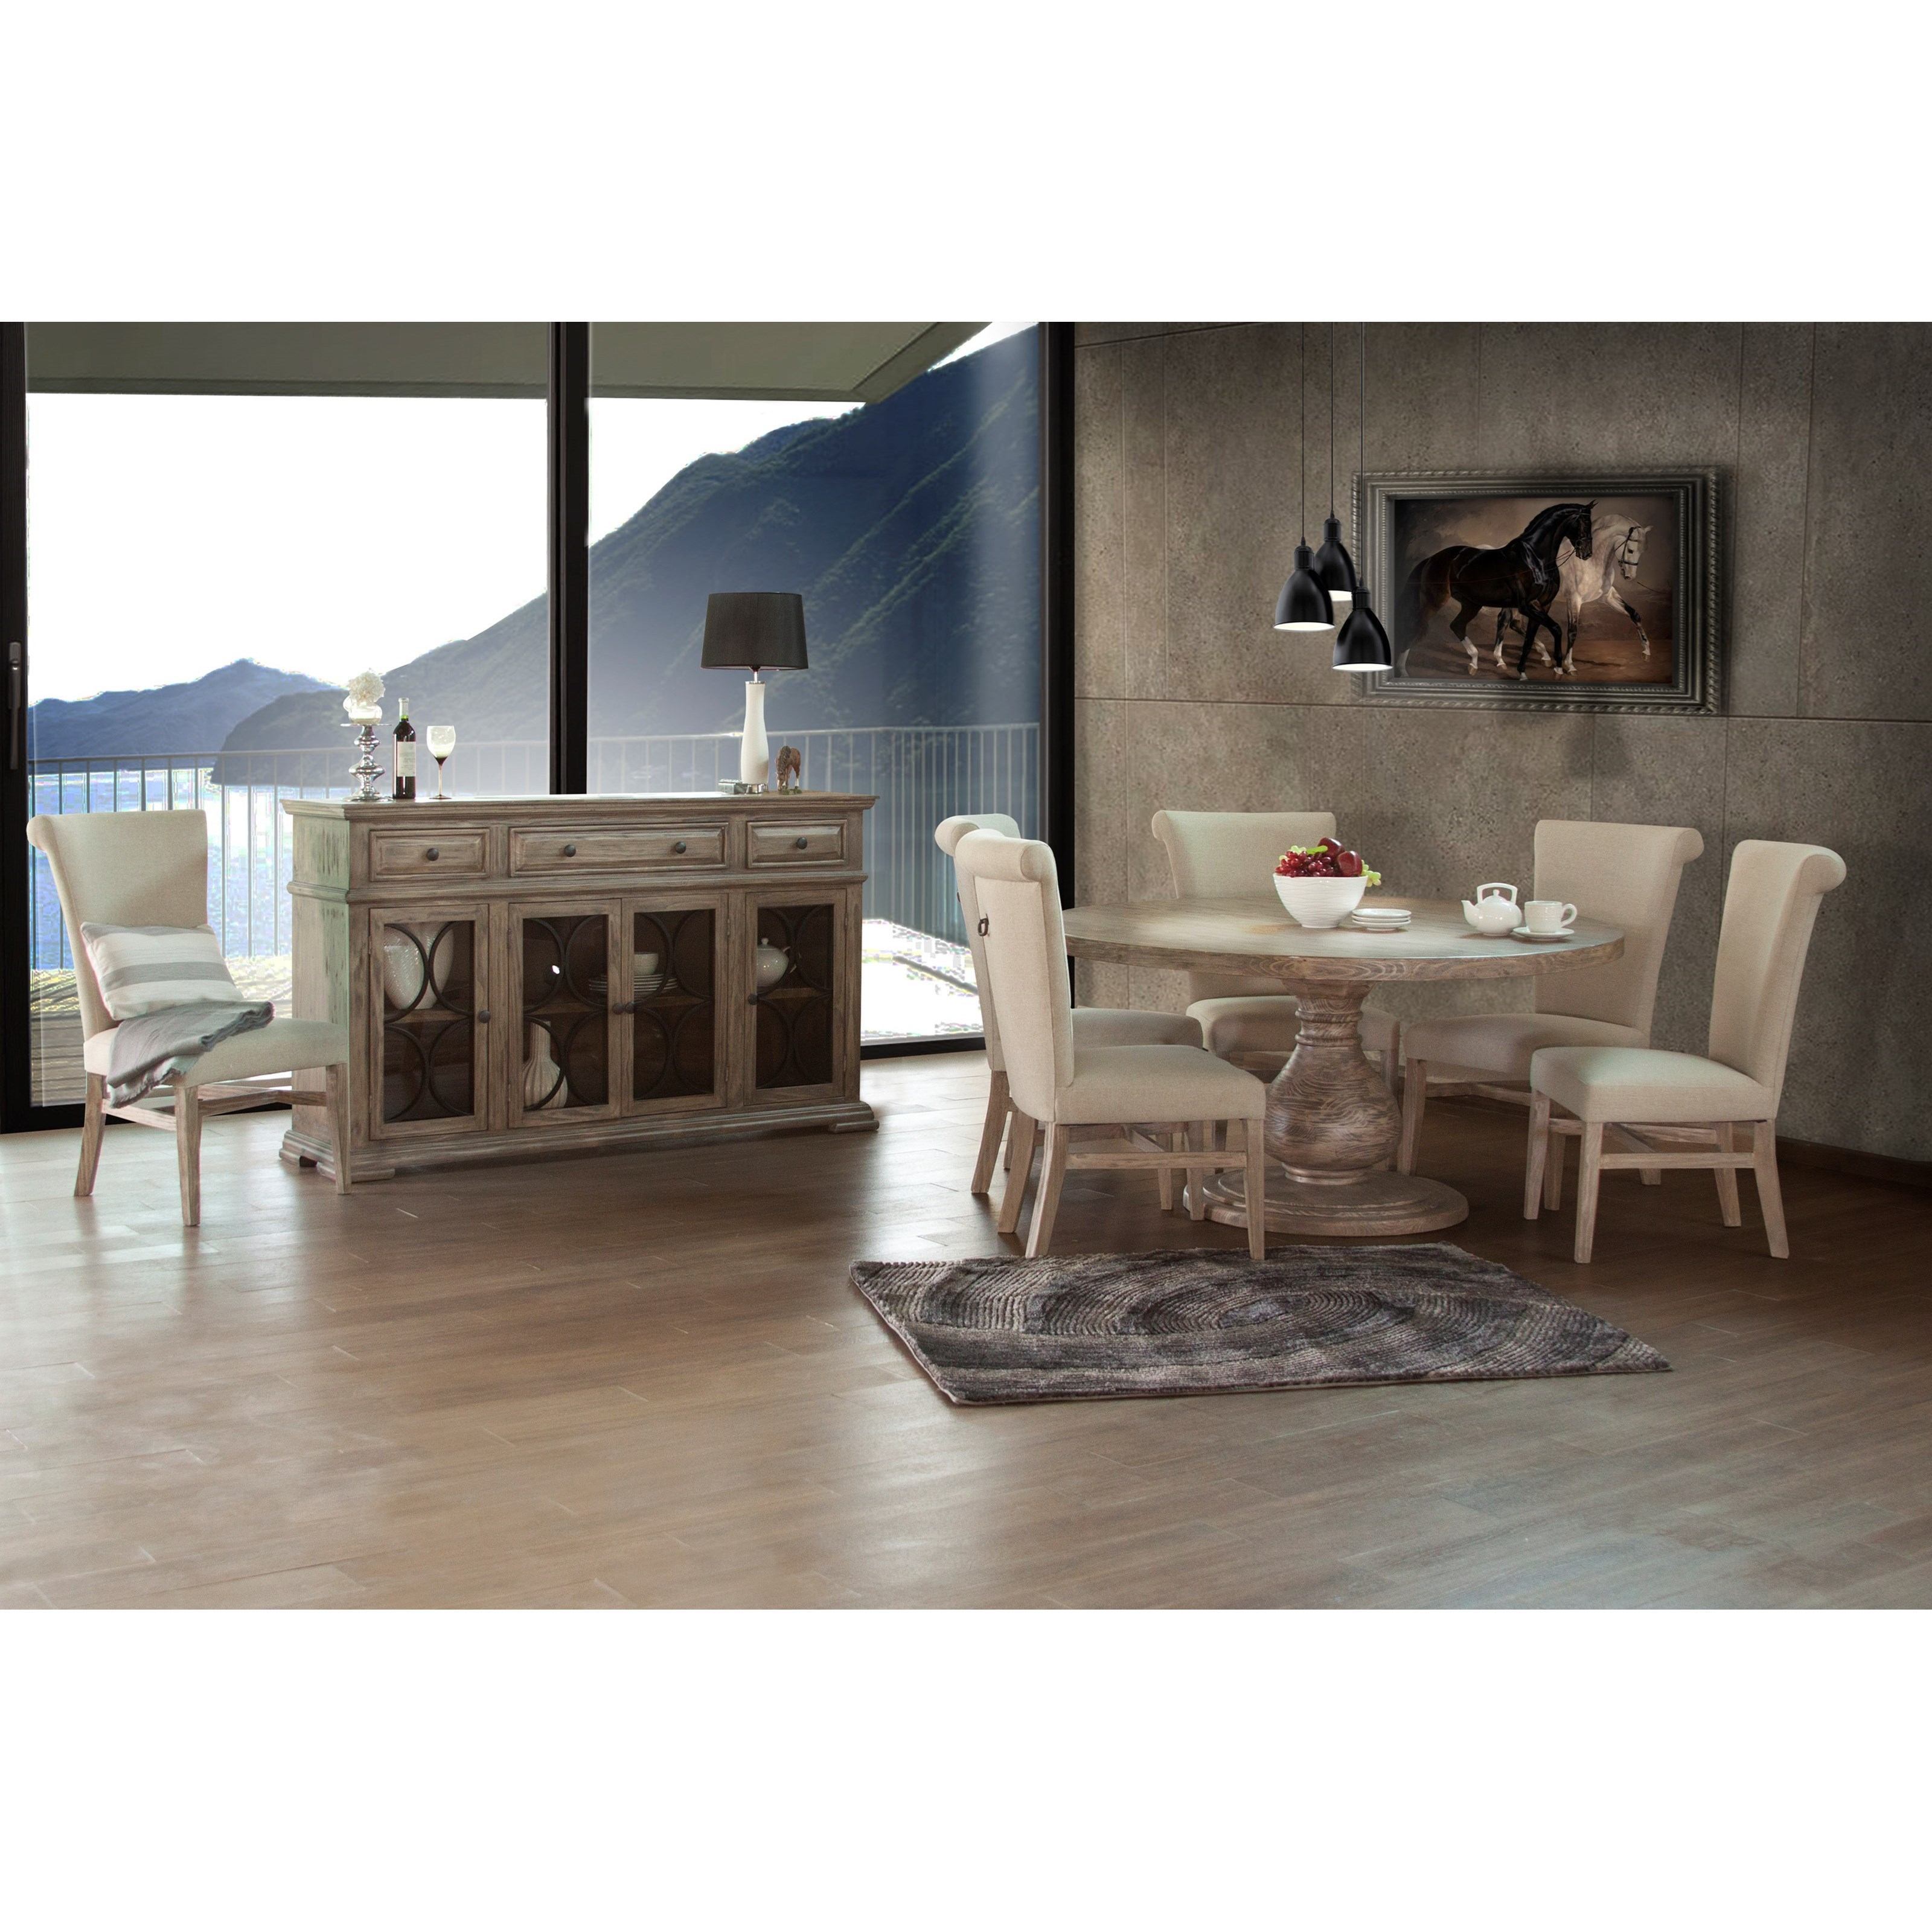 Bonanza Sand Casual Dining Room Group by International Furniture Direct at Furniture Superstore - Rochester, MN